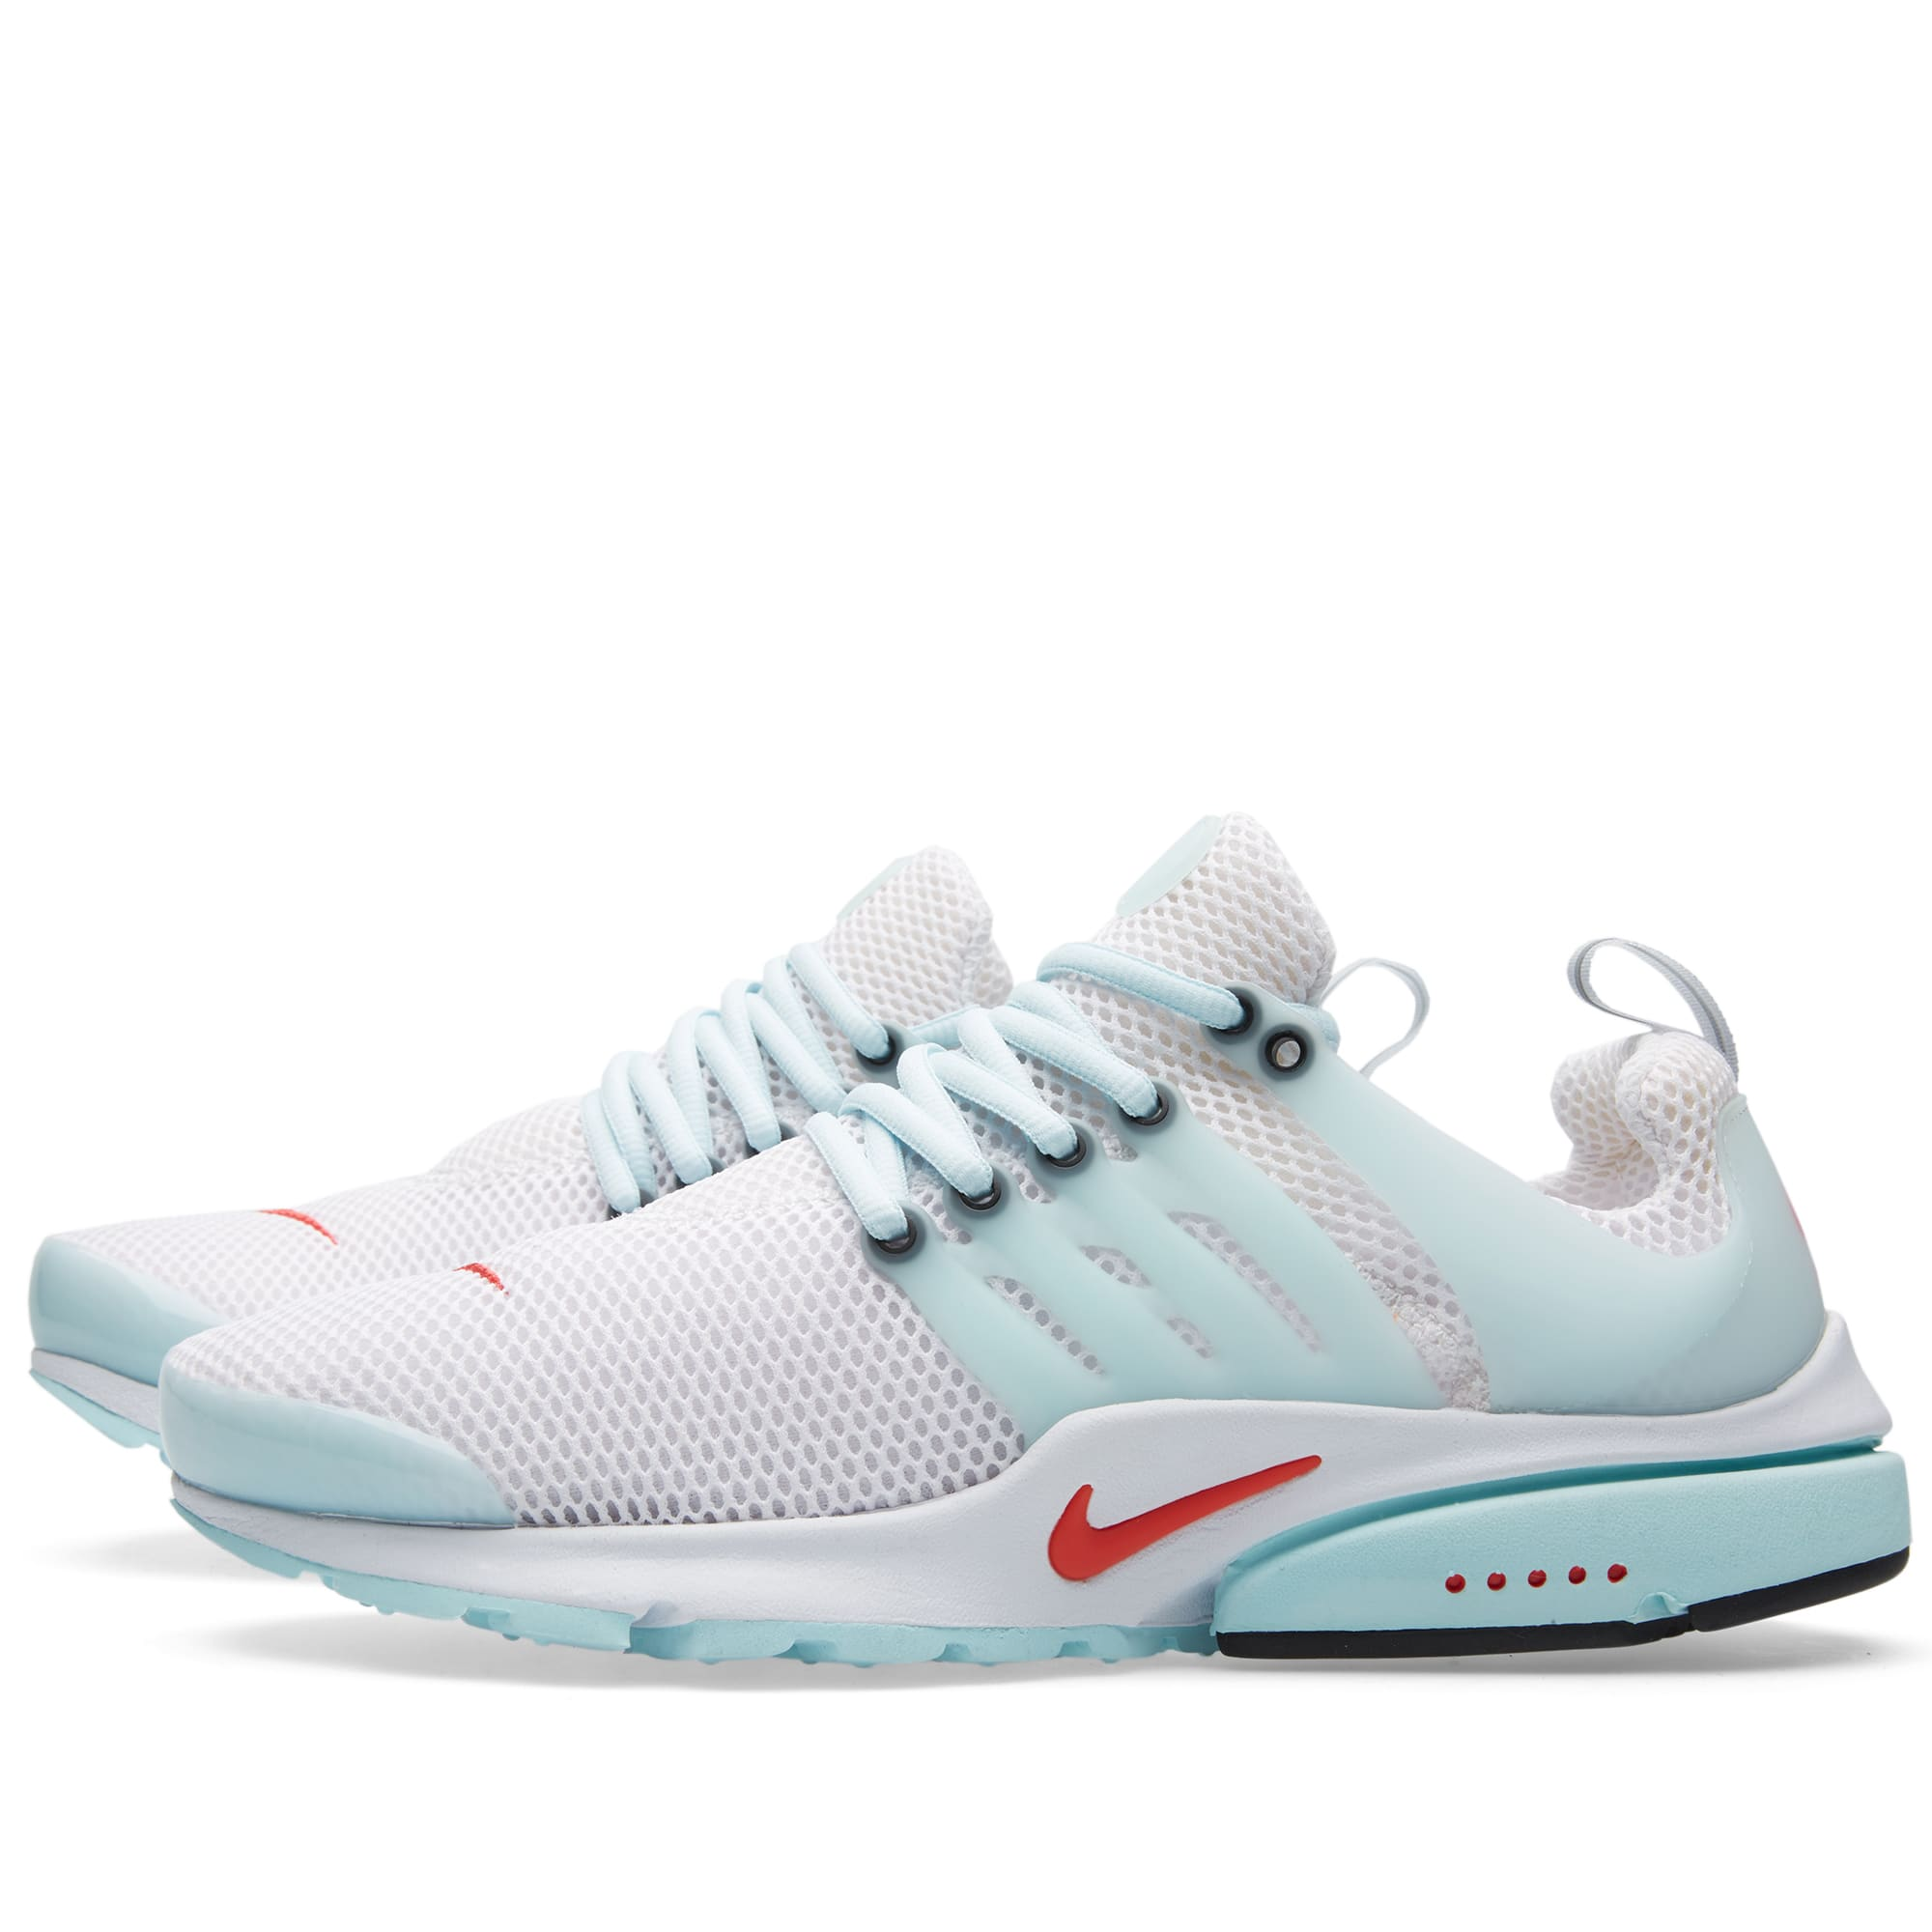 great fit reasonably priced elegant shoes Nike Air Presto QS 'Unholy Cumulus'